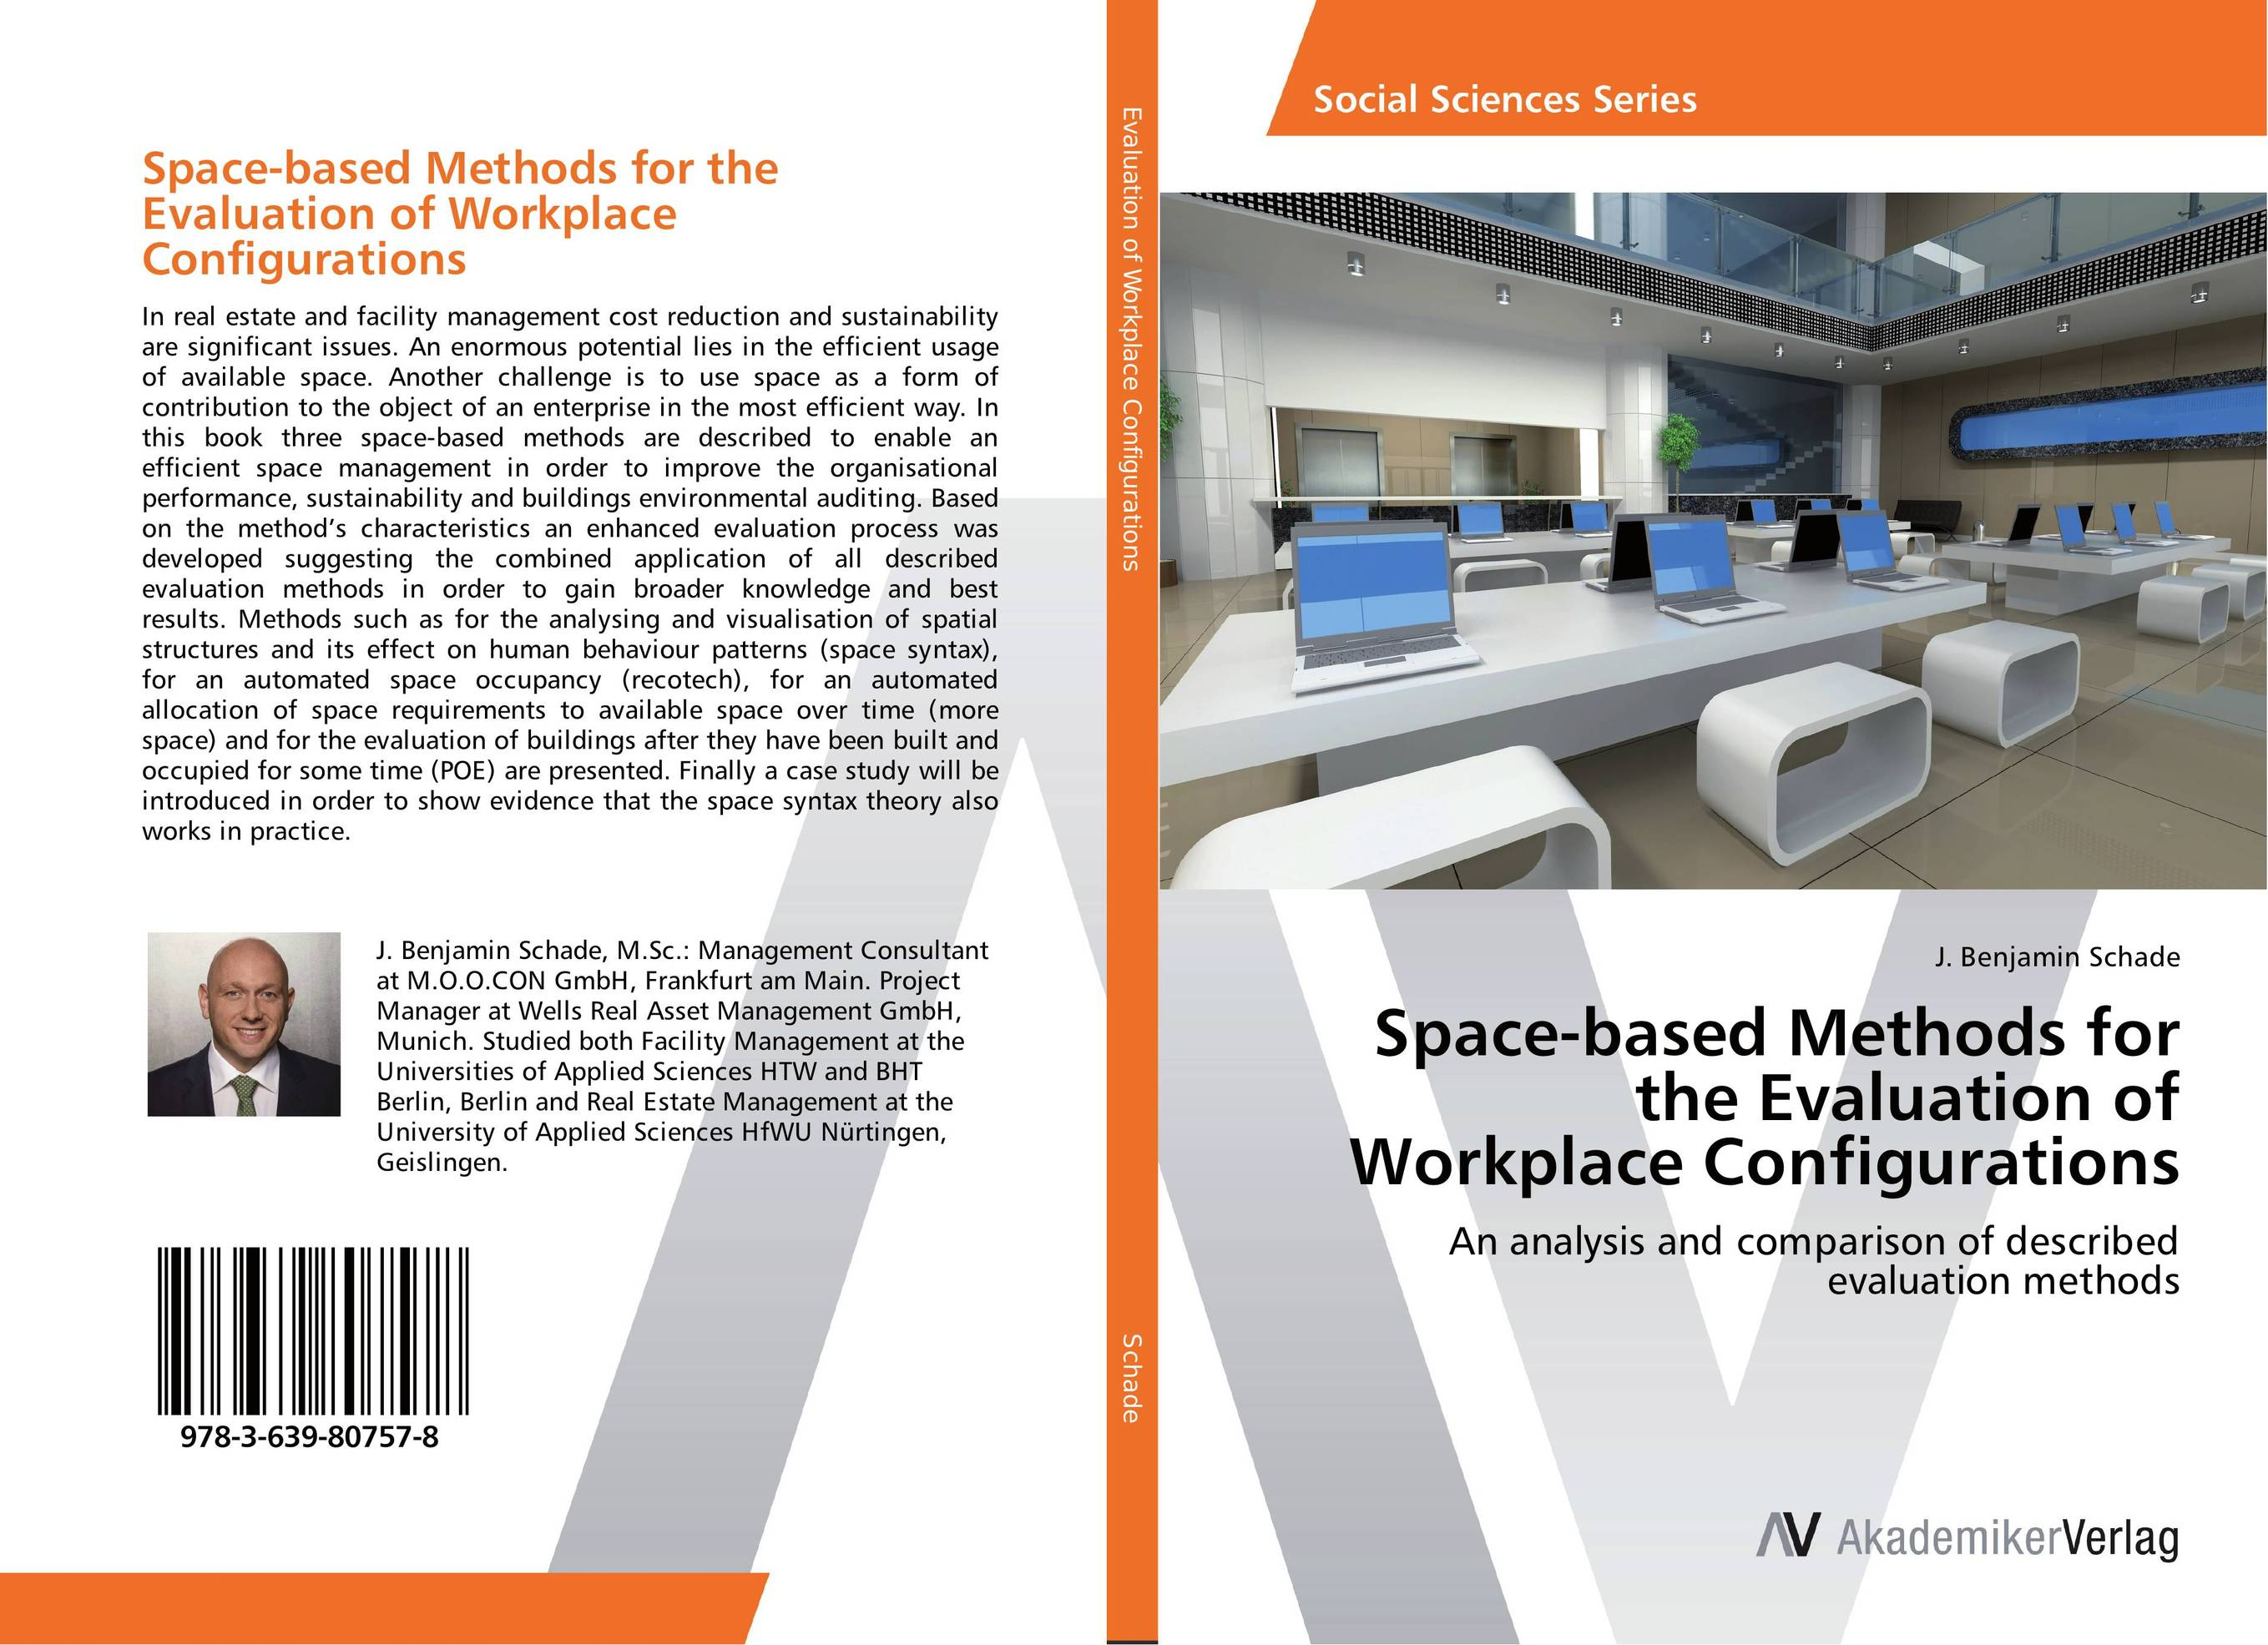 Space-based Methods for the Evaluation of Workplace Configurations belousov a security features of banknotes and other documents methods of authentication manual денежные билеты бланки ценных бумаг и документов